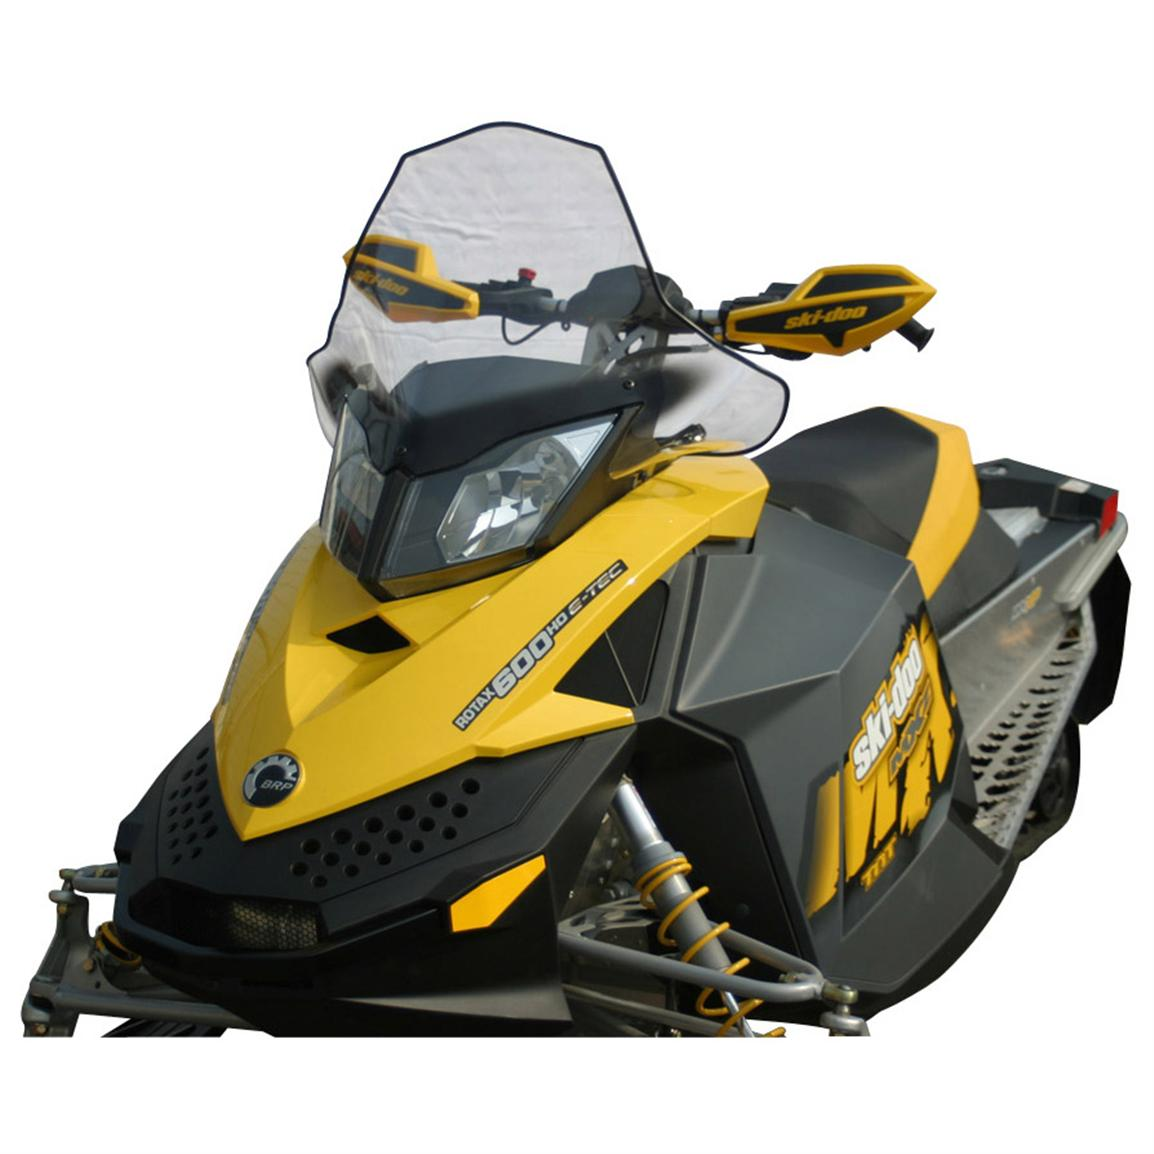 17 1/4 inch PowerMadd® Cobra Snowmobile Windshield for Ski-Doo REV XP Chassis, Clear with Black Accent